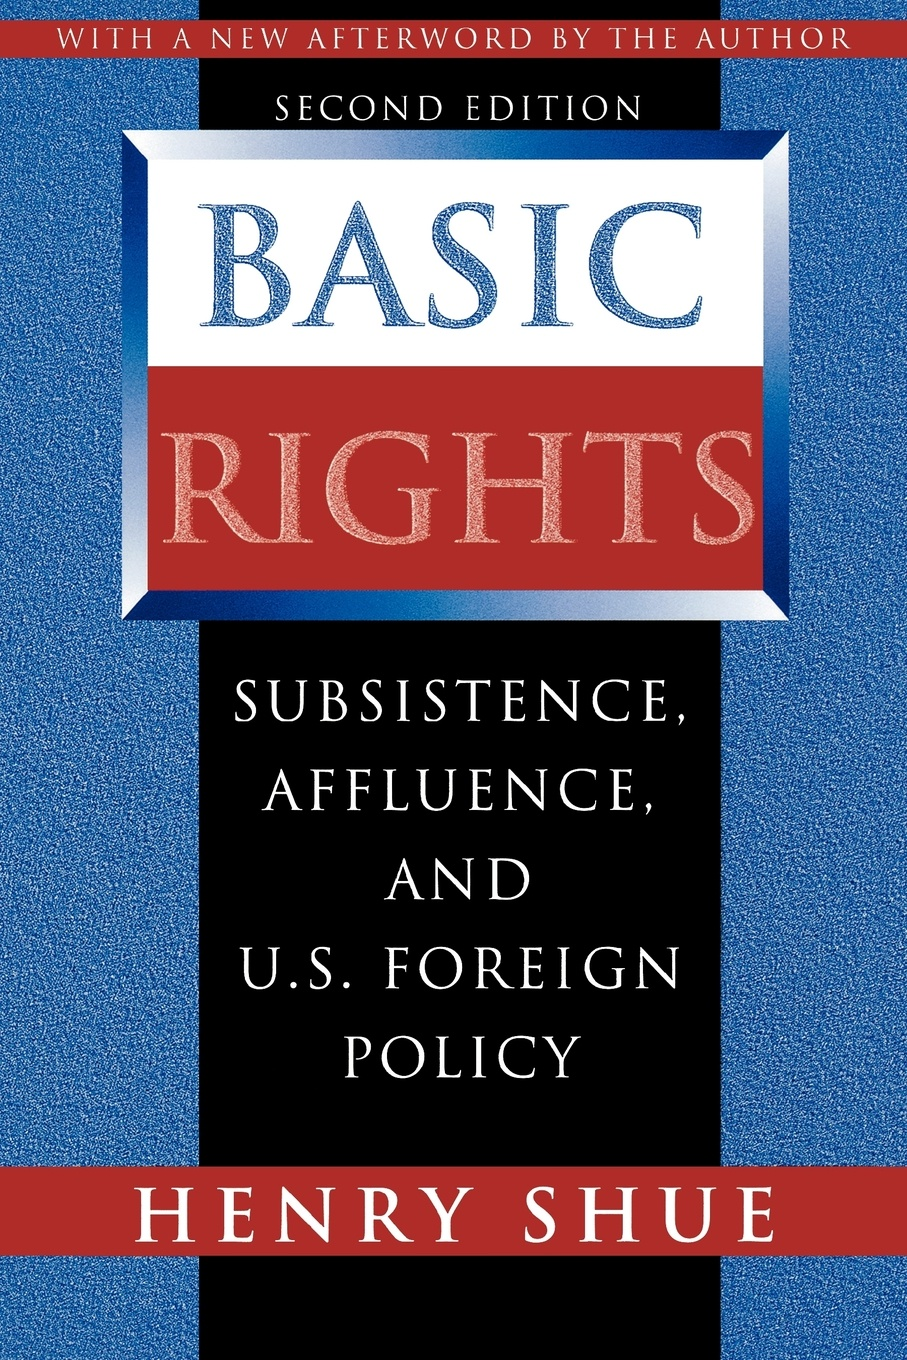 Henry Shue Basic Rights. Subsistence, Affluence, and U.S. Foreign Policy - Second Edition henry shue basic rights subsistence affluence and u s foreign policy second edition